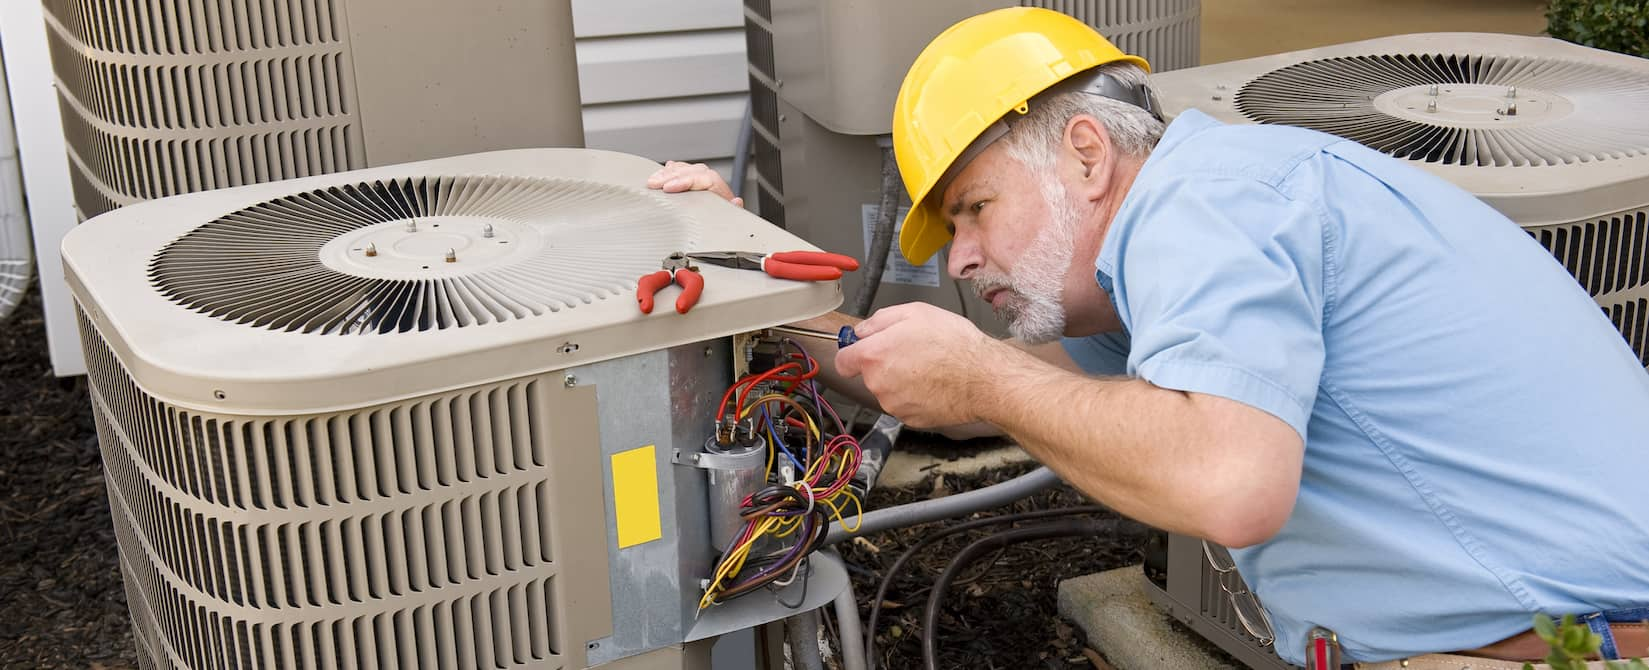 Air Conditioning In Louisville  5022361533  Jarboes